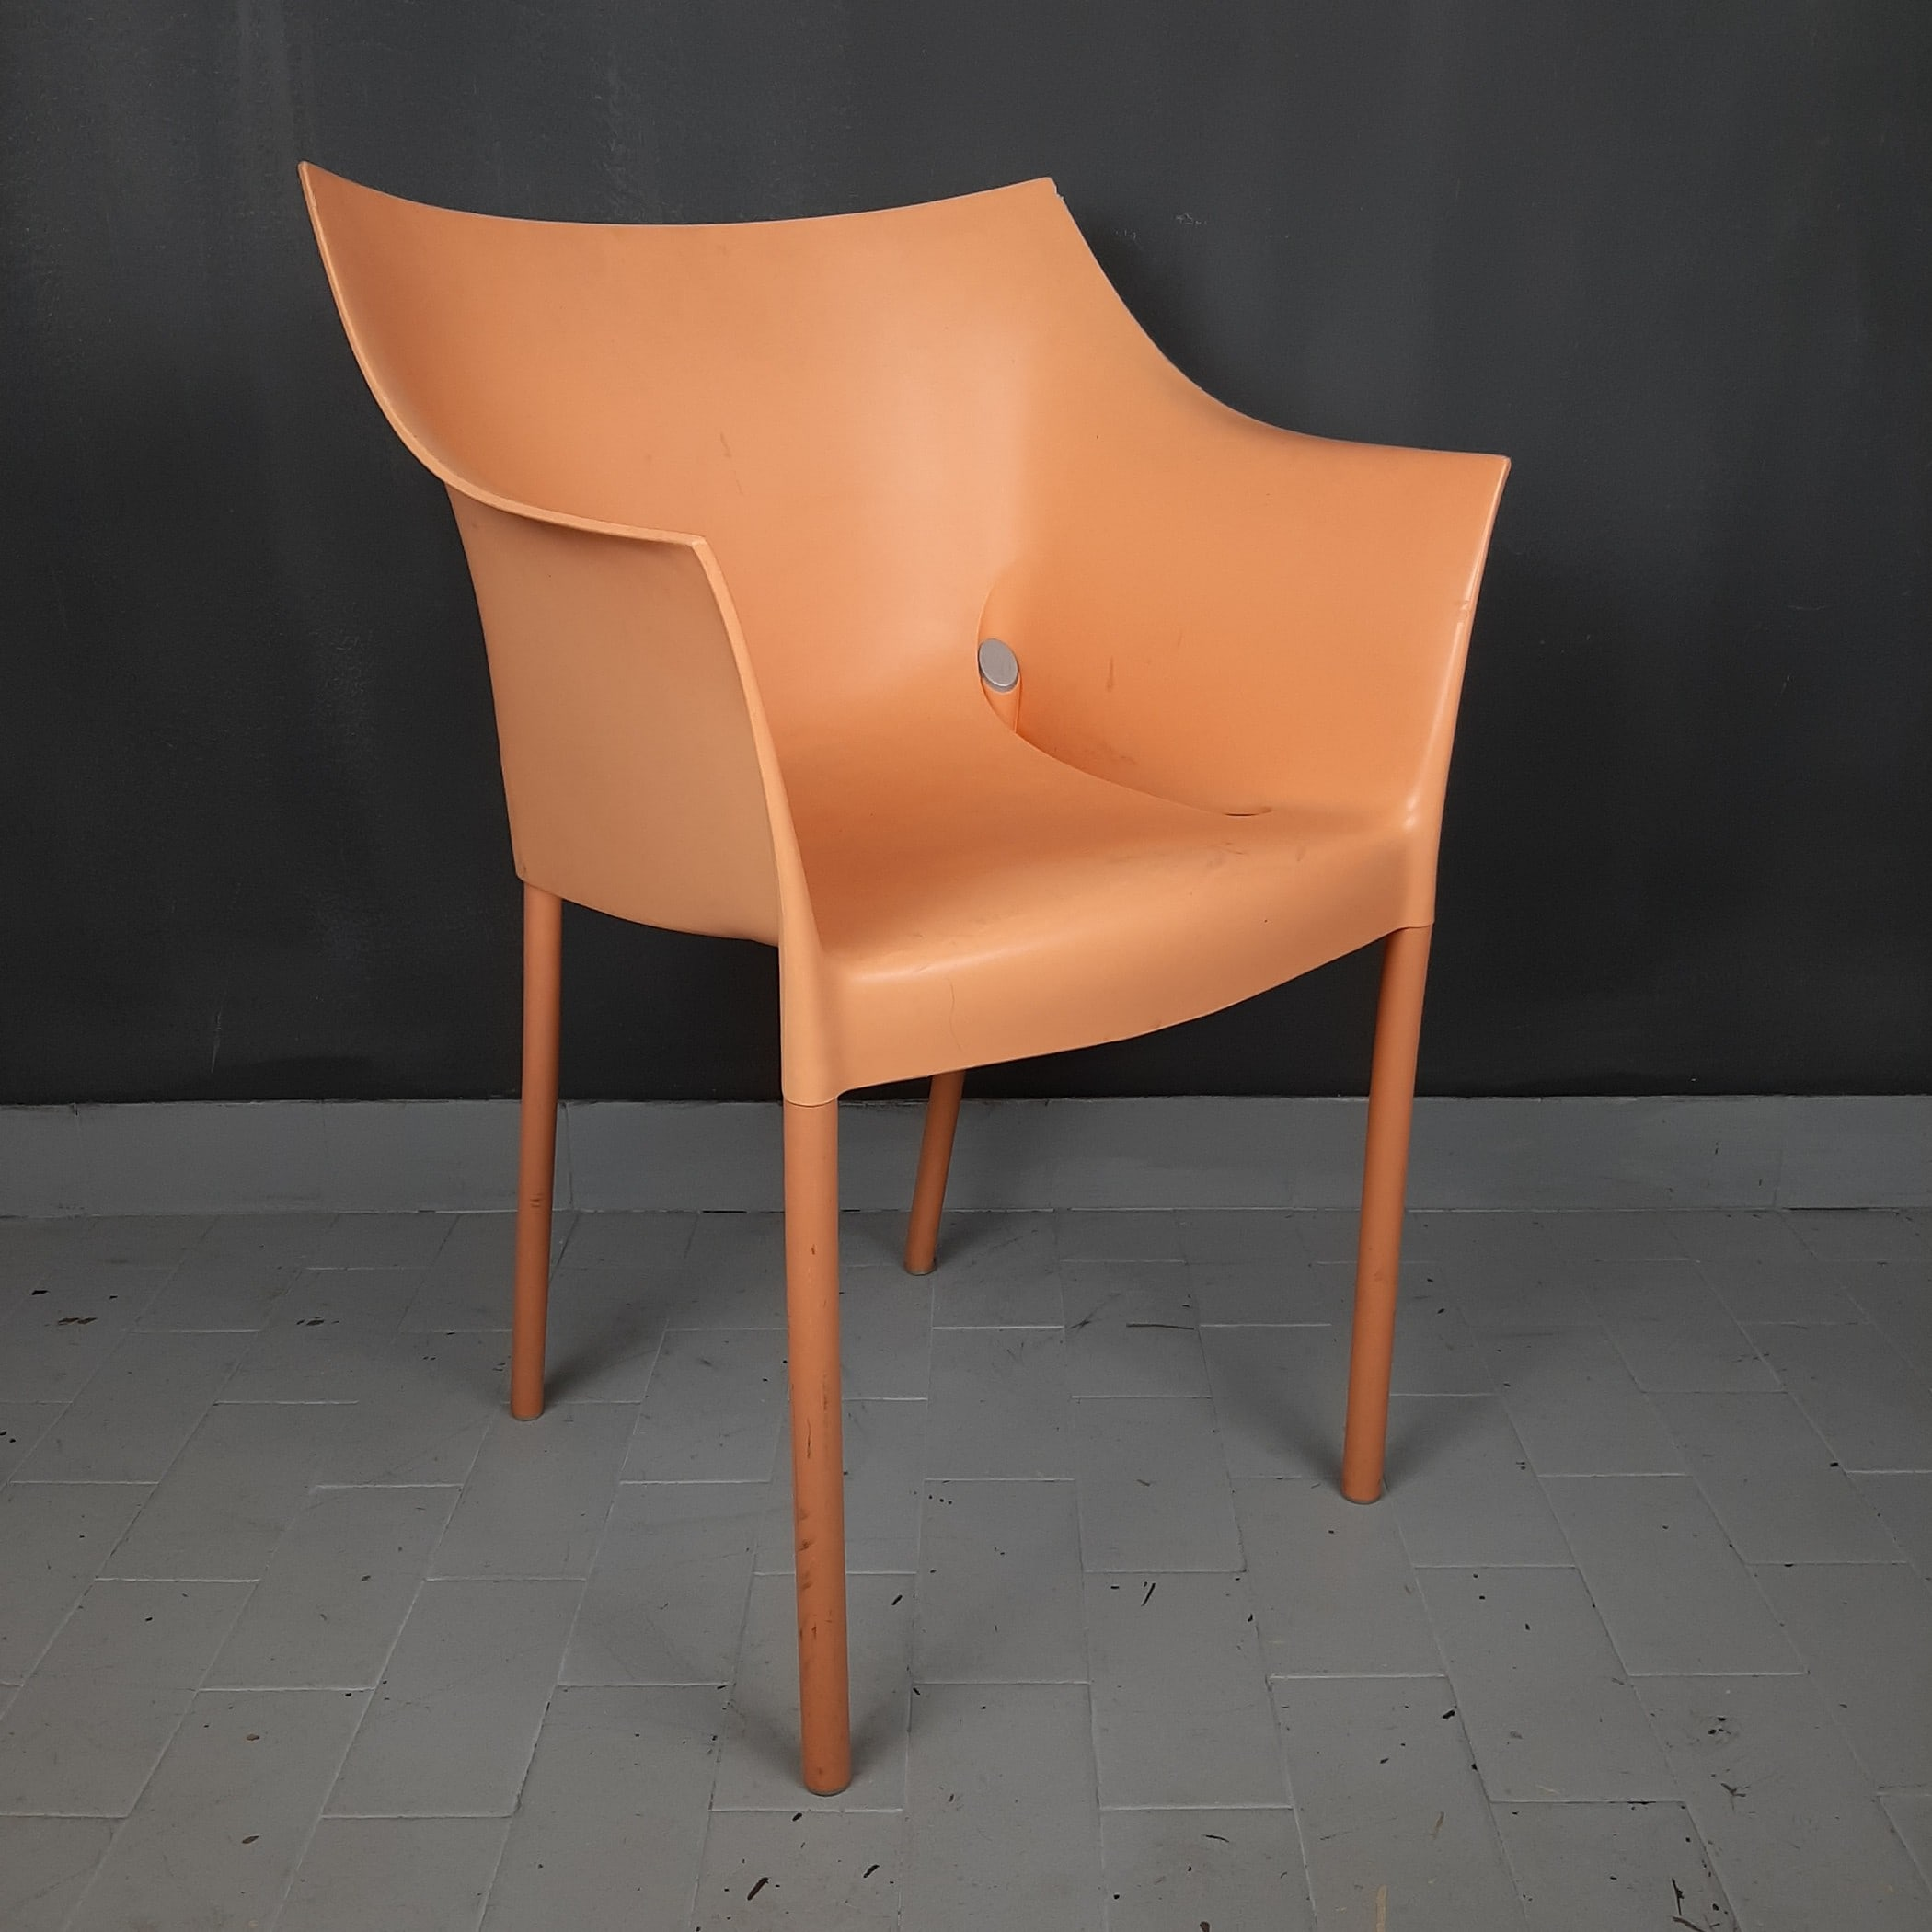 Dr. NO chair designer Philippe Starck for Kartell Italy 1990s apricot chair